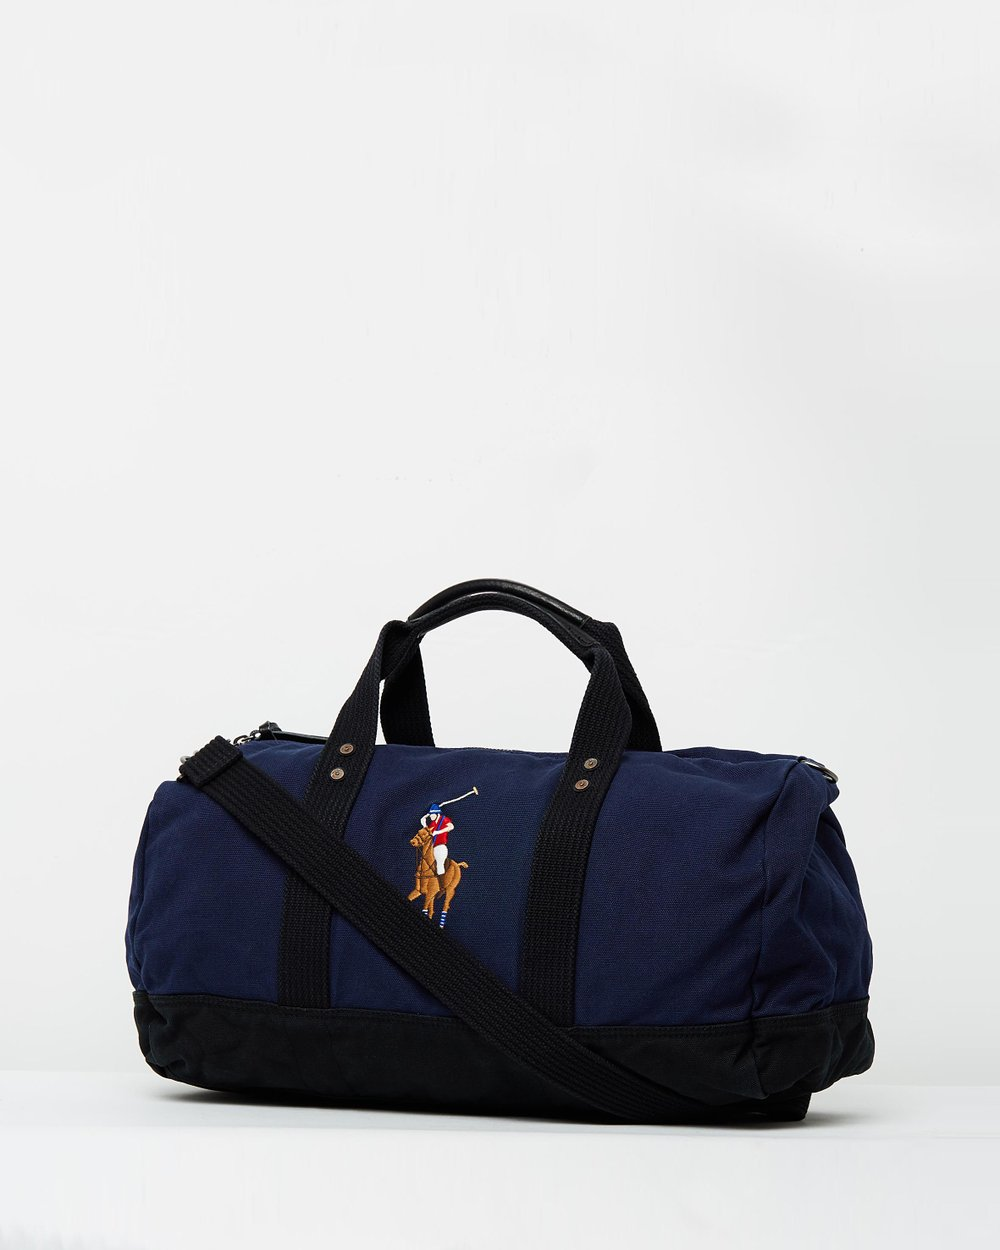 Medium Duffle by Polo Ralph Lauren Online  2f5b7e4a55d77